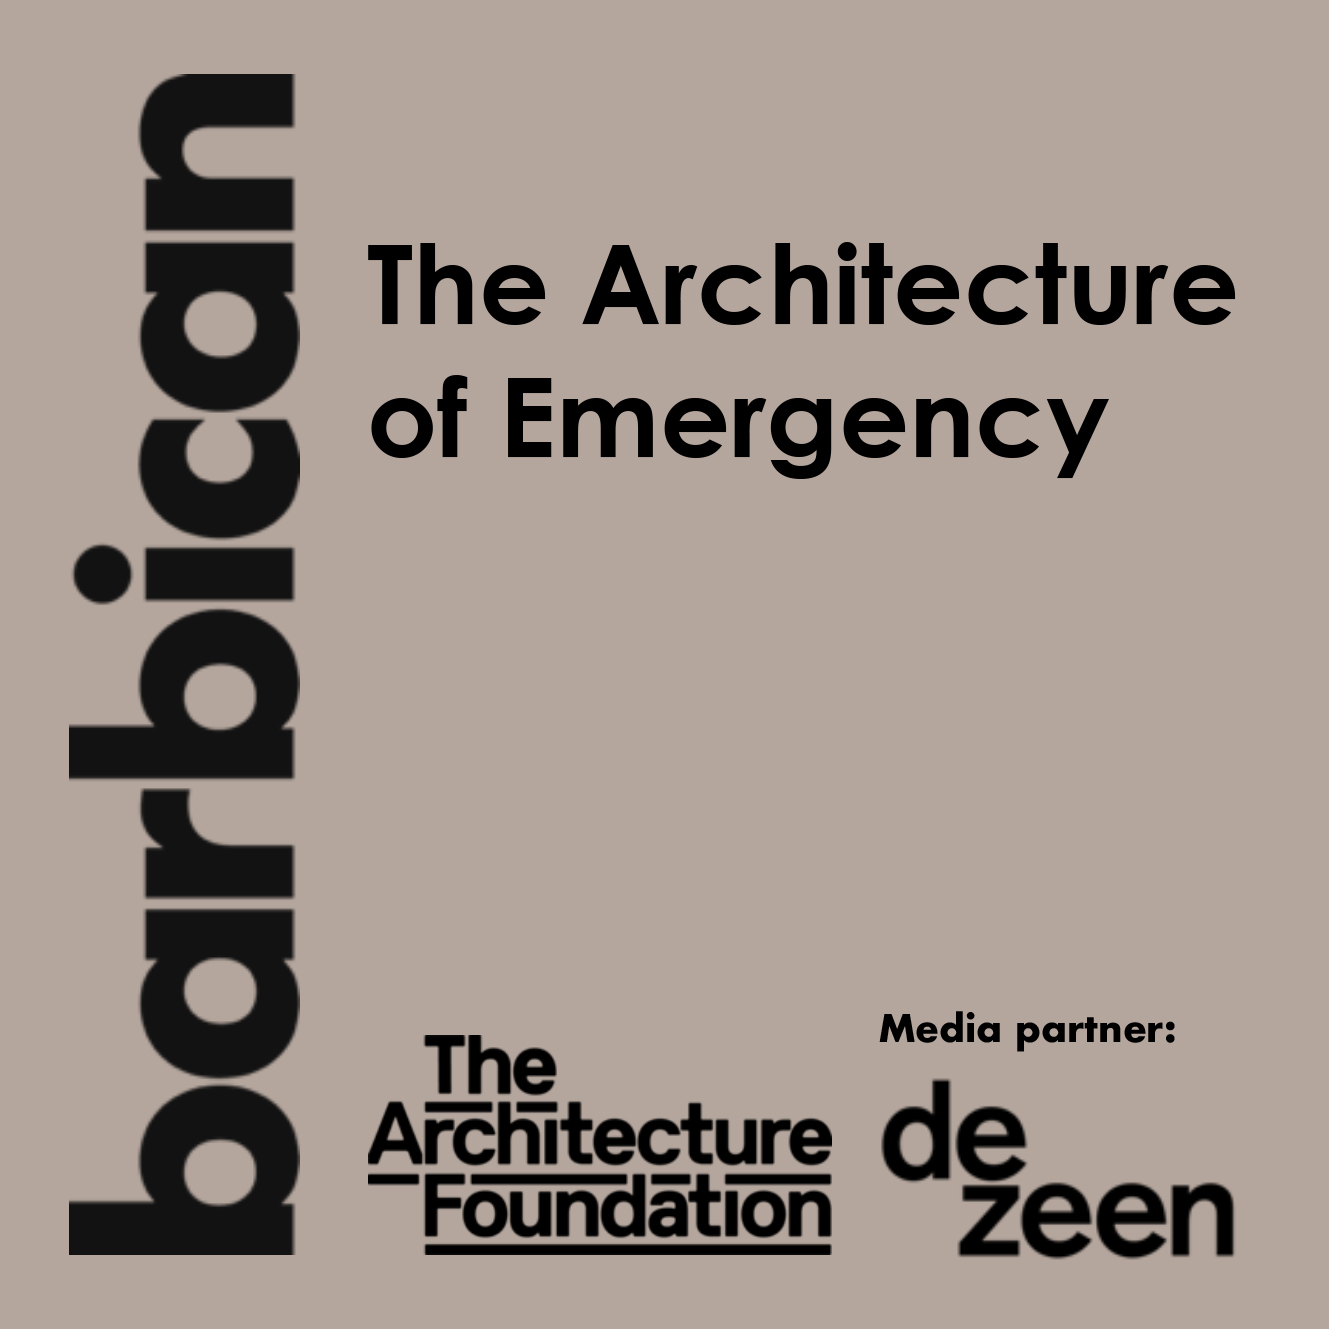 The Architecture of Emergency talk